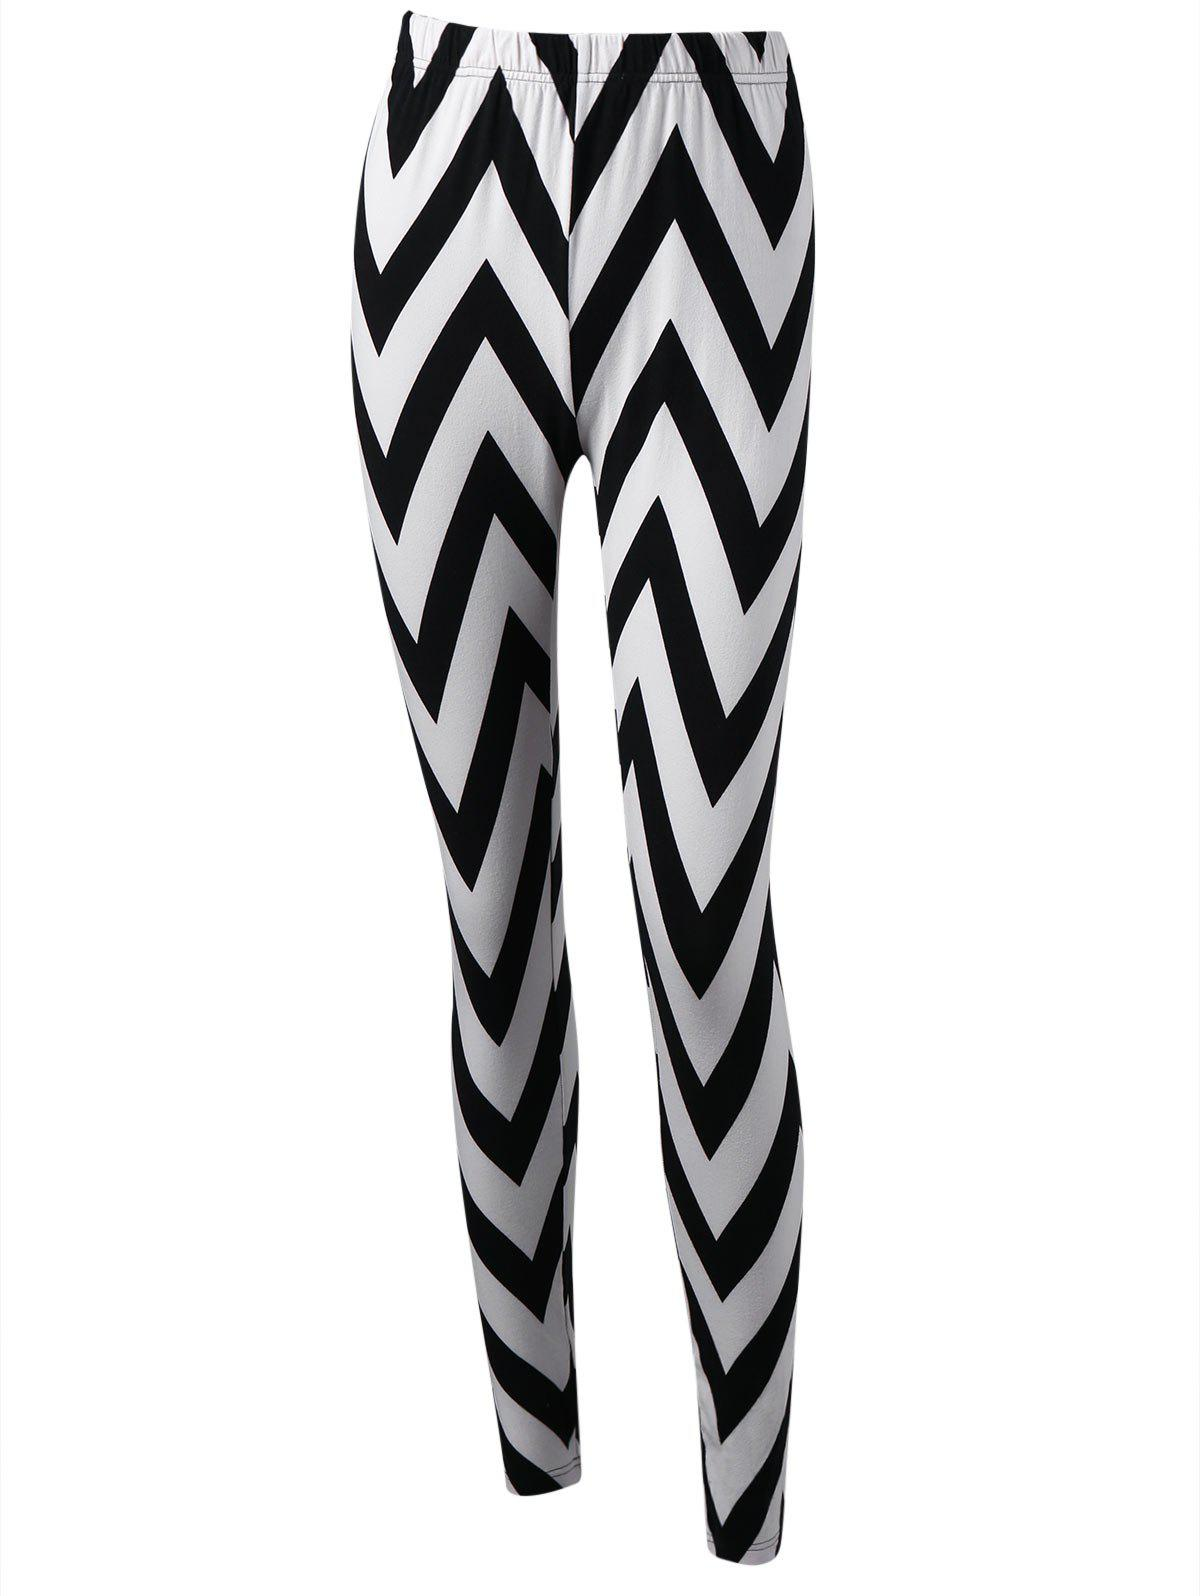 Monochrome Zigzag Leggings - WHITE/BLACK M